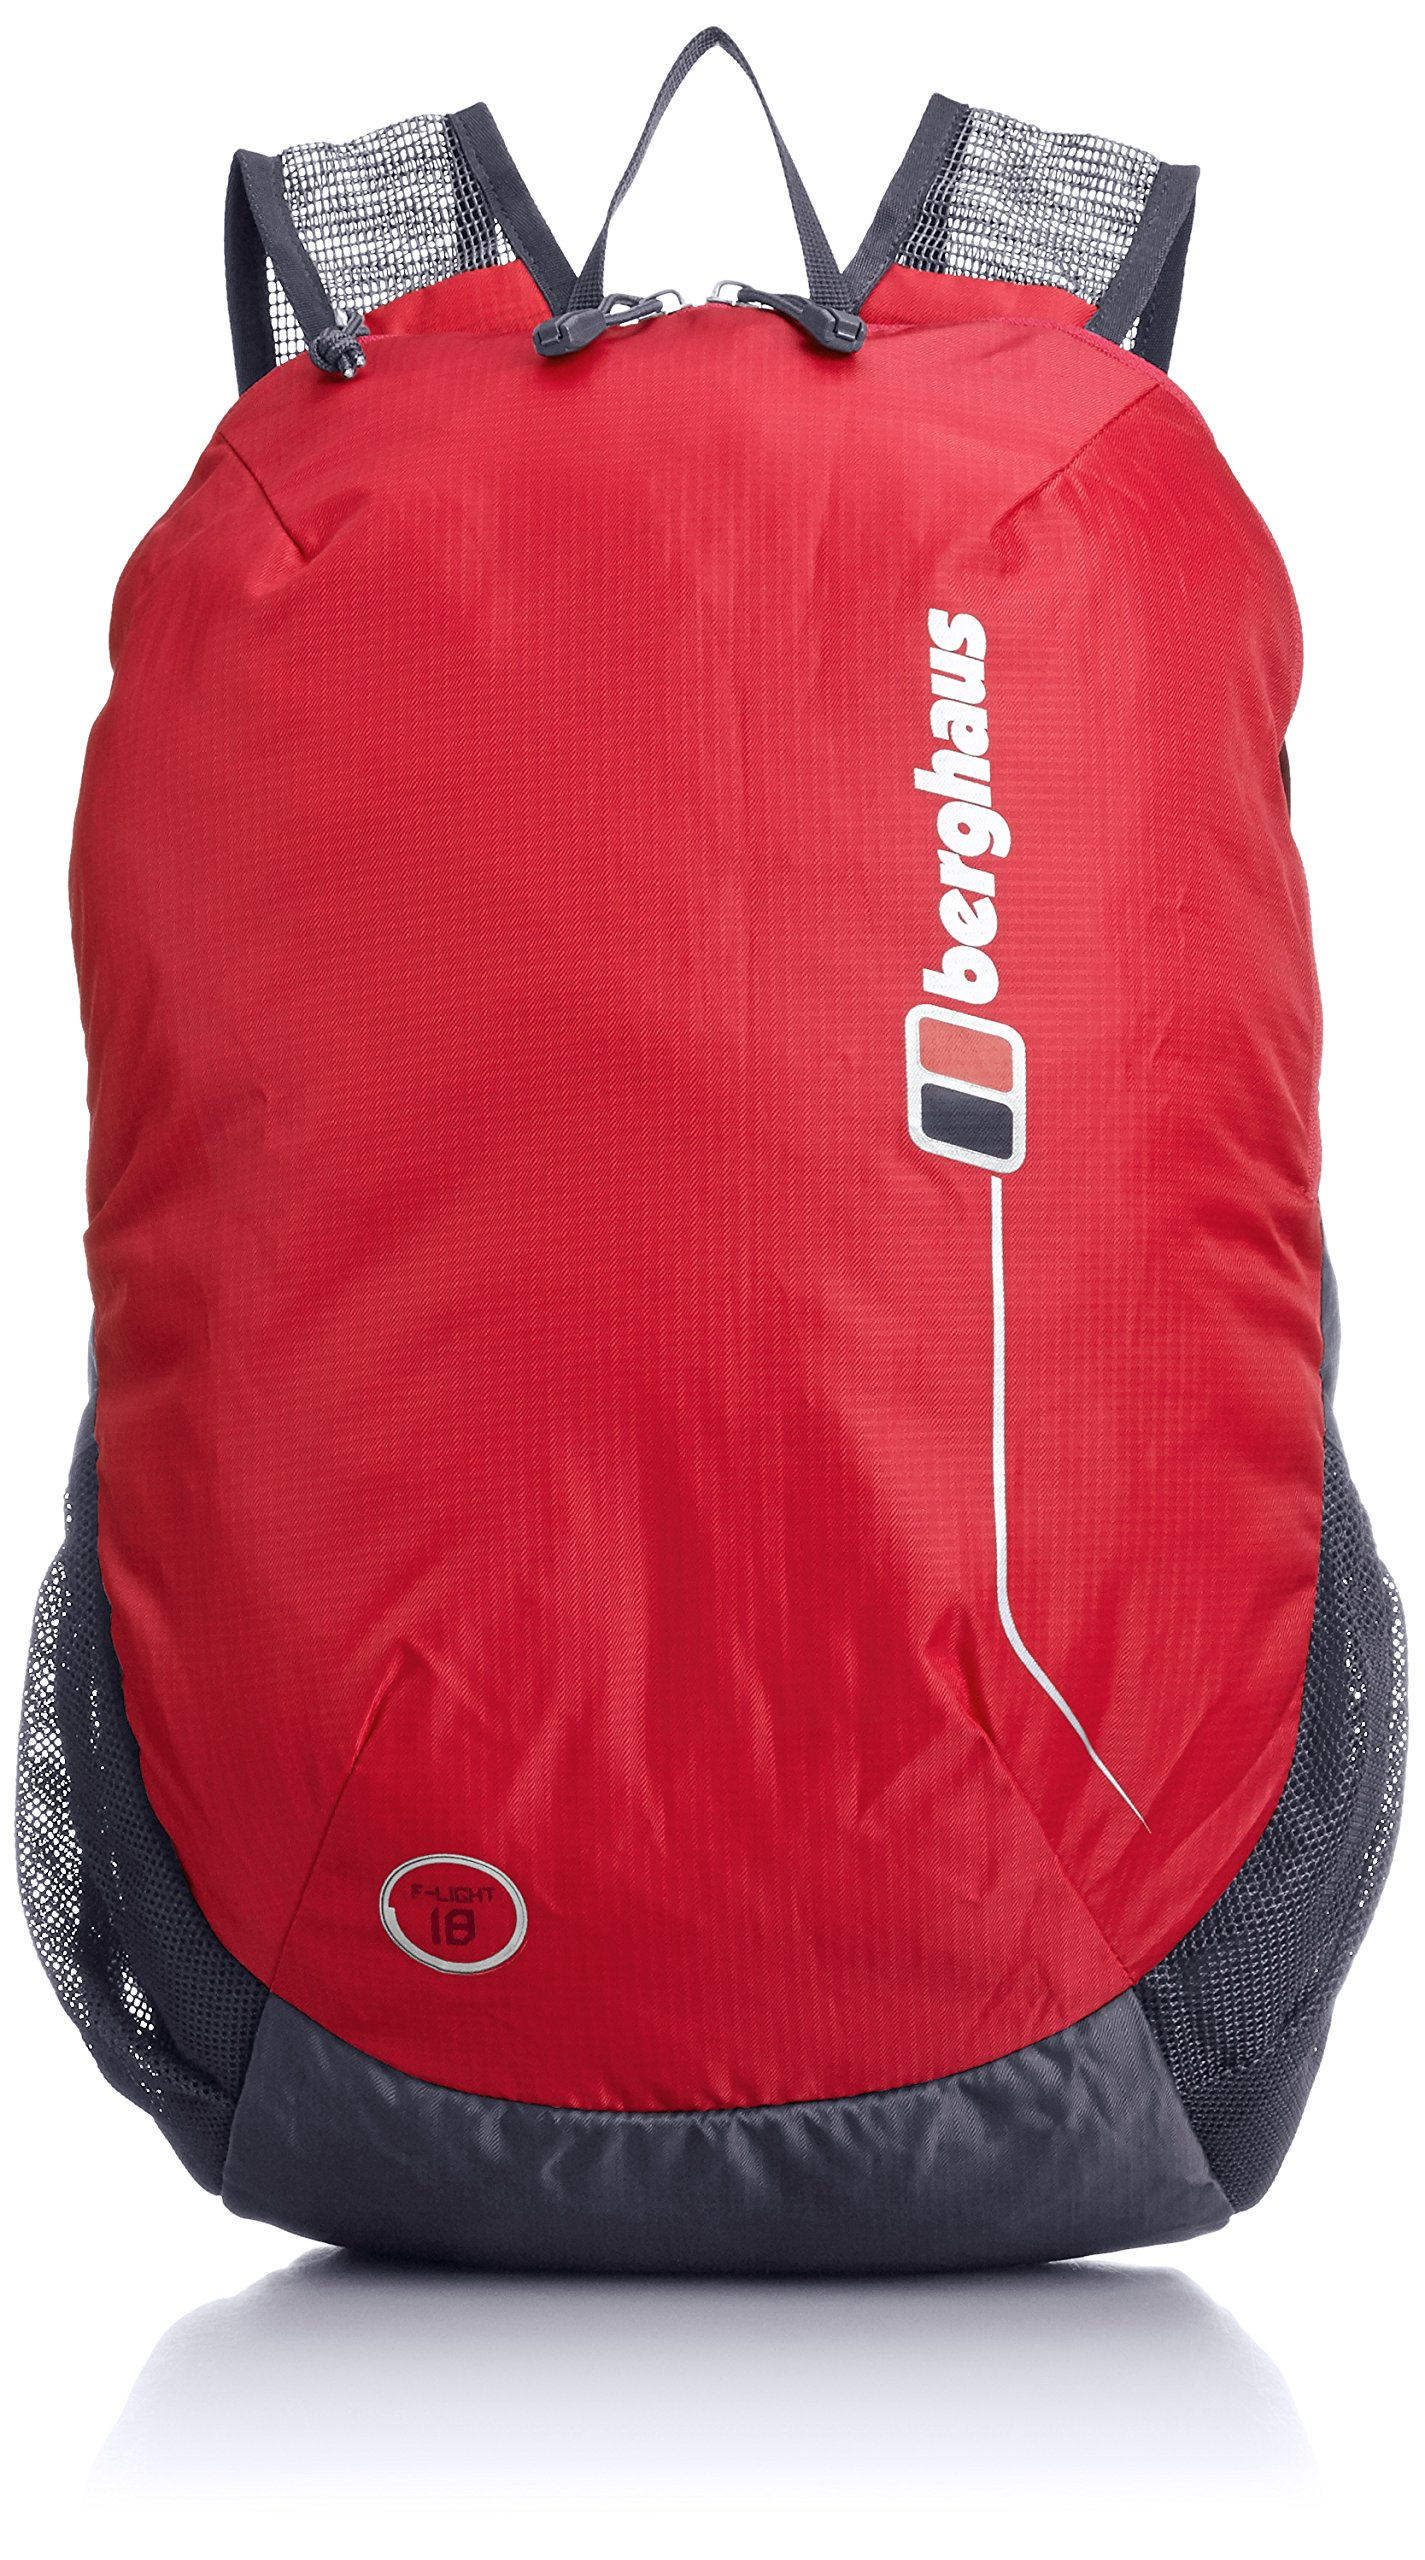 Berghaus F-Light 18 Rucsac - Extreme Red/CARBON, One Size by Berghaus